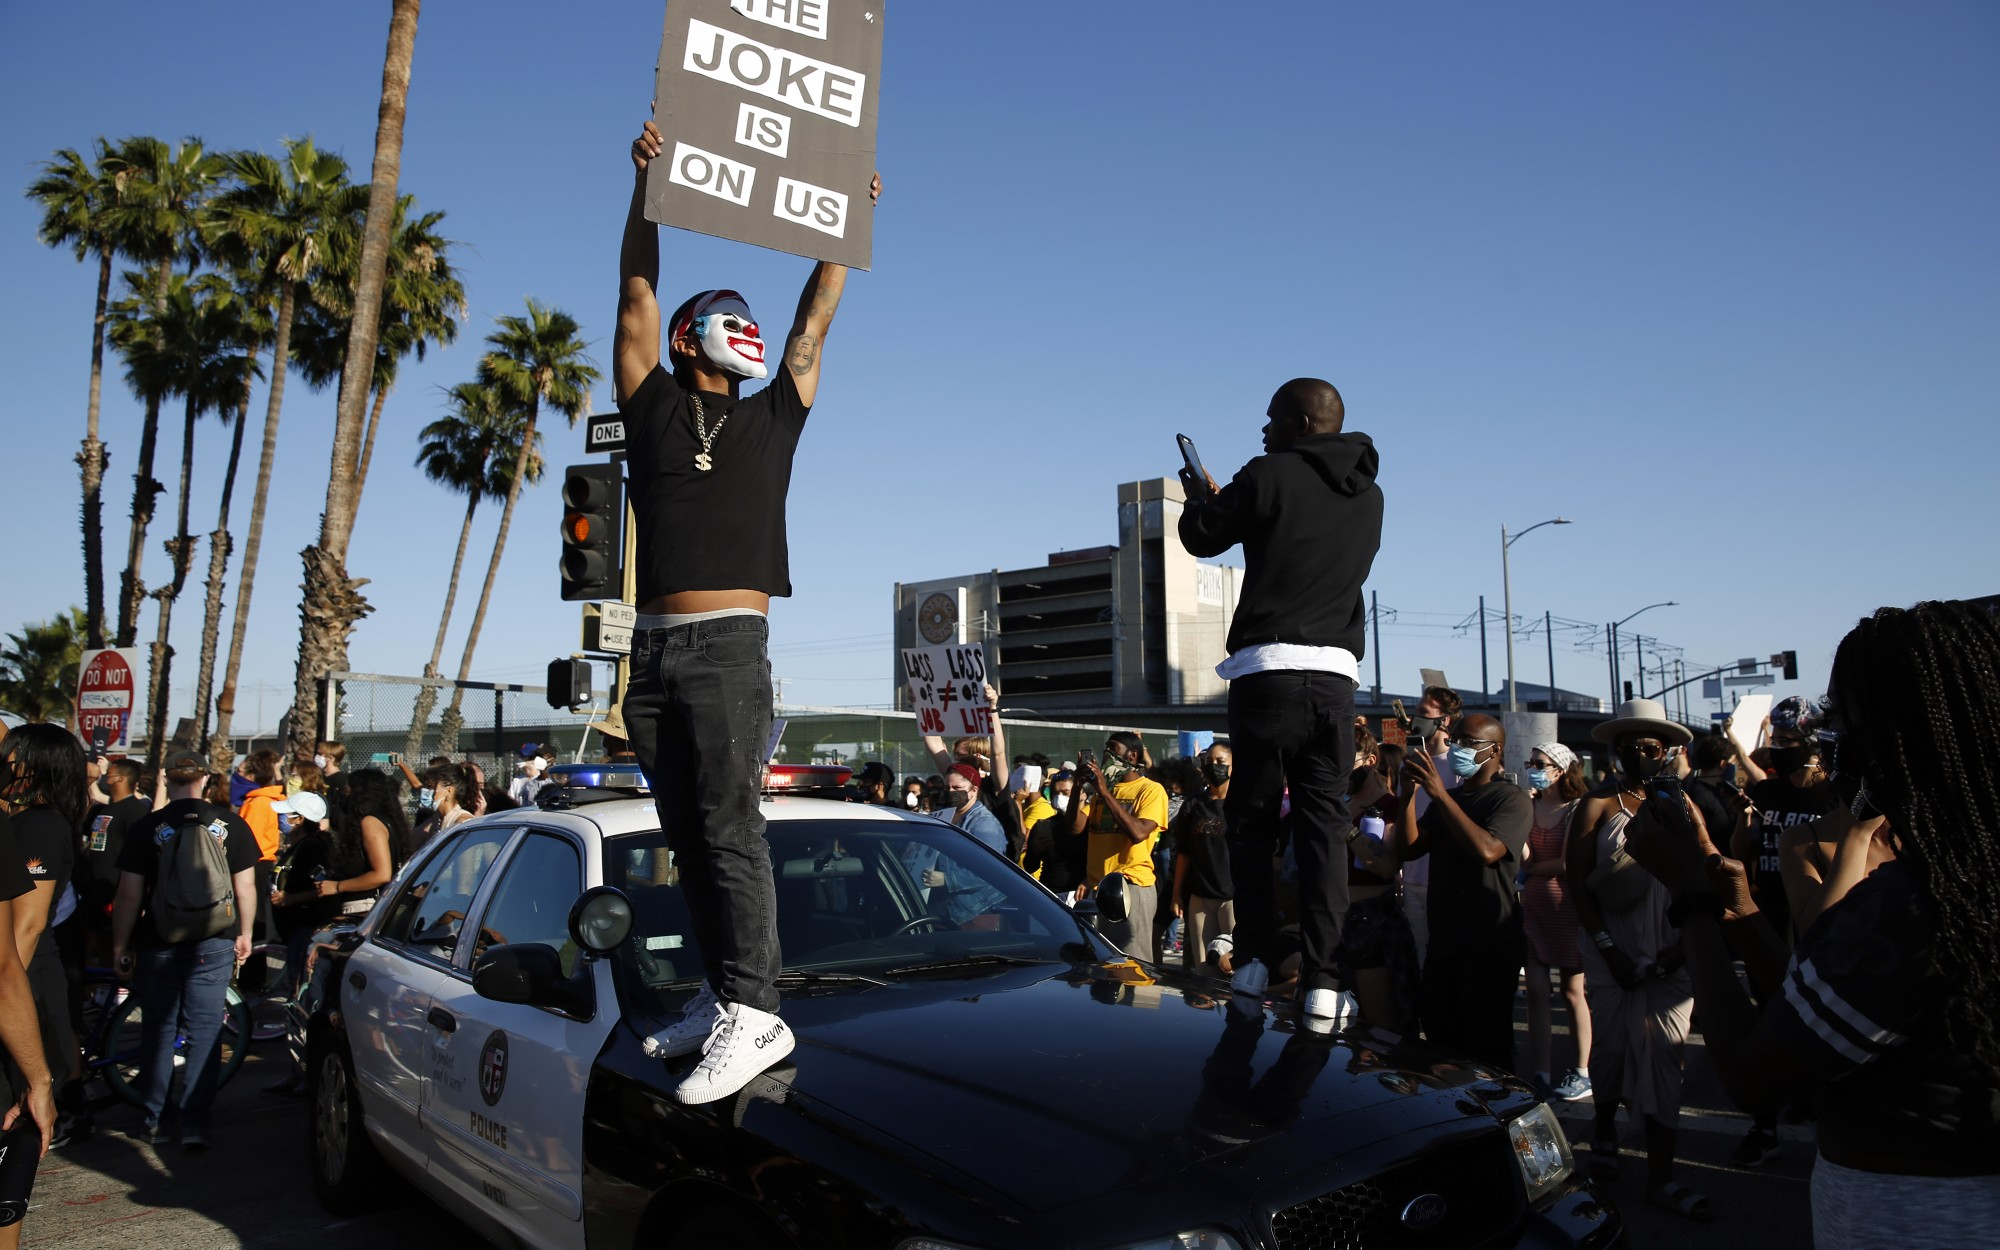 Protesters stand on a Los Angeles police cruiser on May 27, 2020, during a downtown L.A. protest over the death of George Floyd in Minneapolis police custody. (Dania Maxwell / Los Angeles Times)